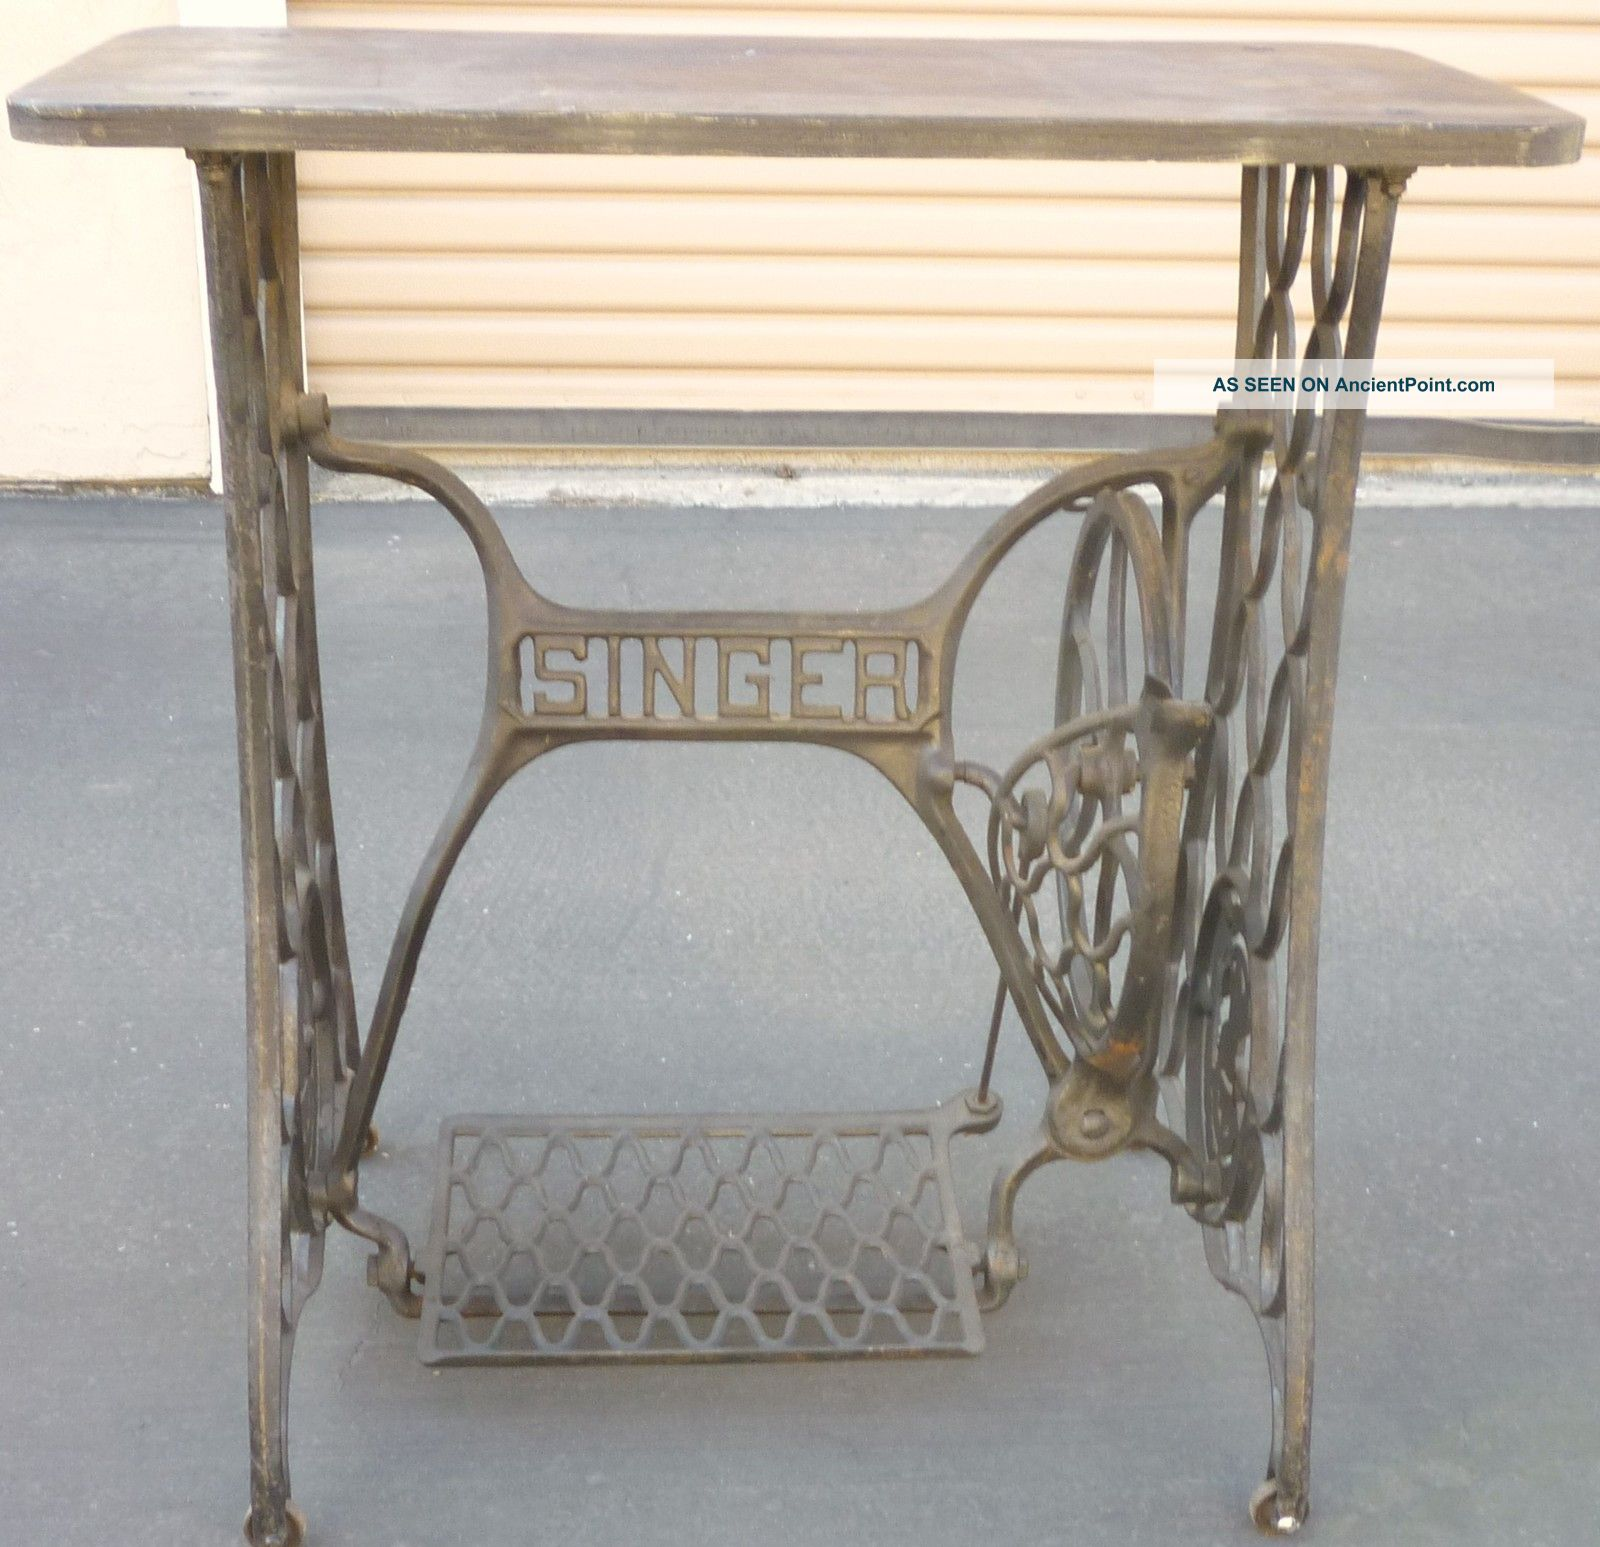 Excellent Vintage Singer Sewing Machine Table 1600 x 1547 · 279 kB · jpeg